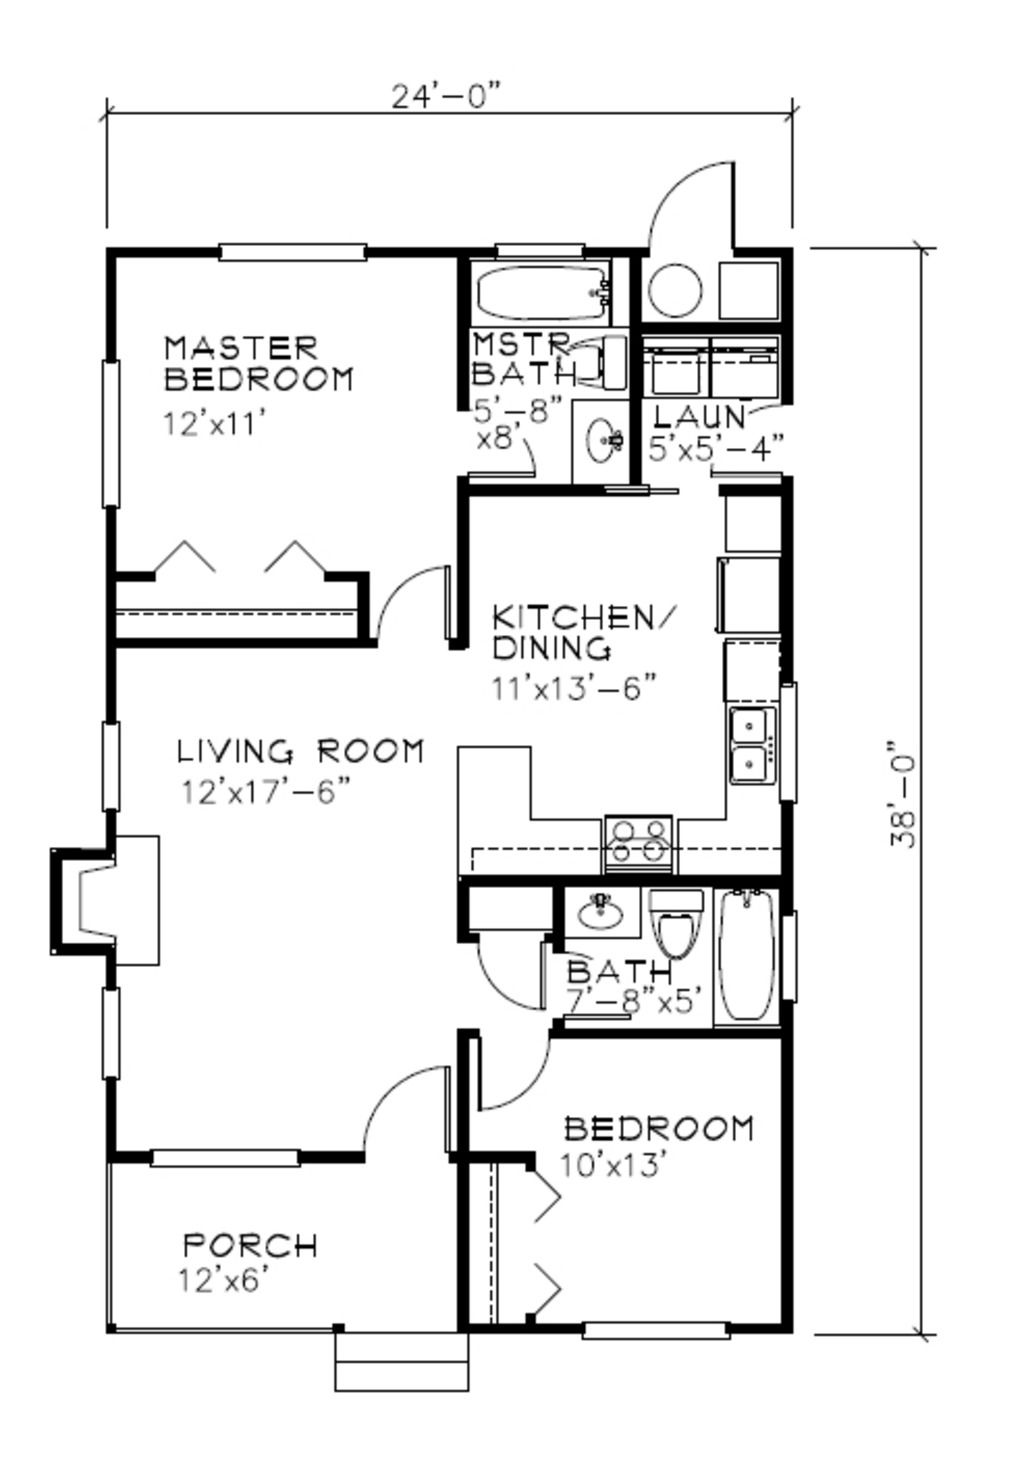 Cottage style house plan 2 beds 2 baths 838 sq ft plan Granny cottage plans